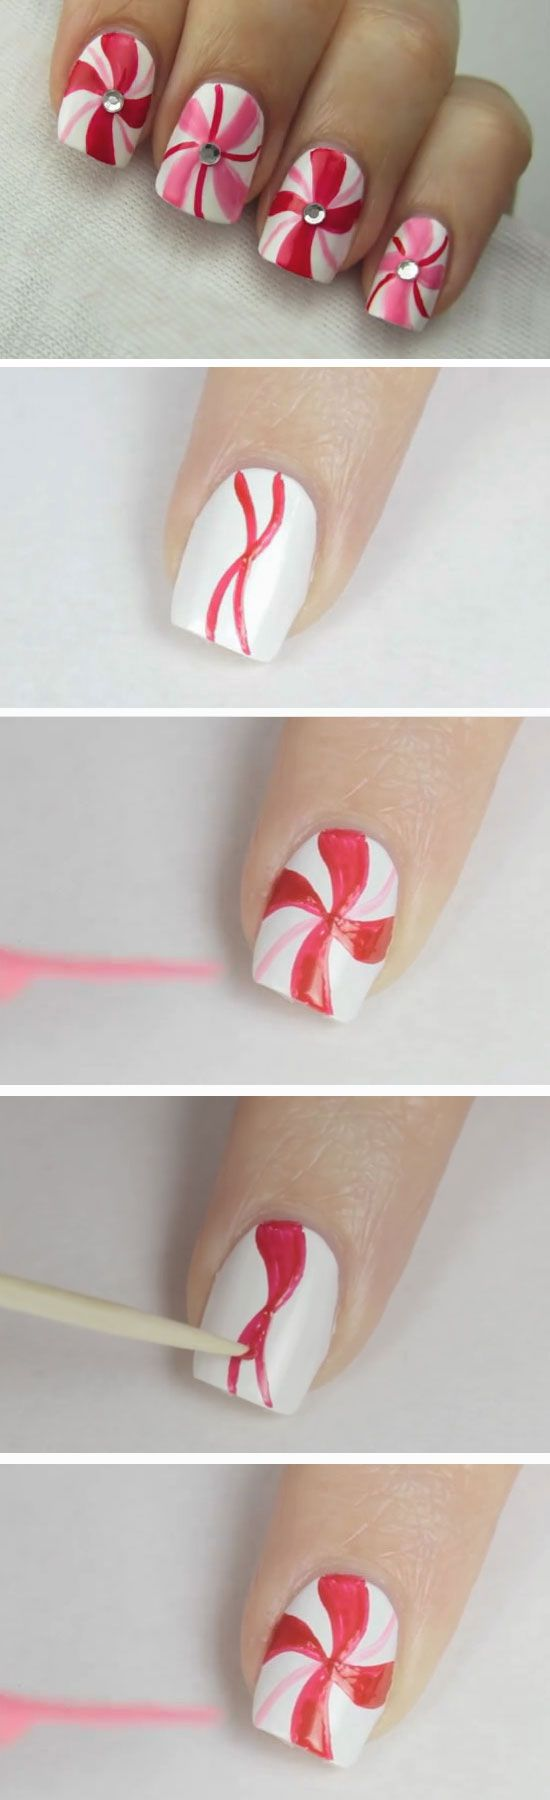 Easy Nail Designs For Beginners Step By Step Vatozozdevelopment